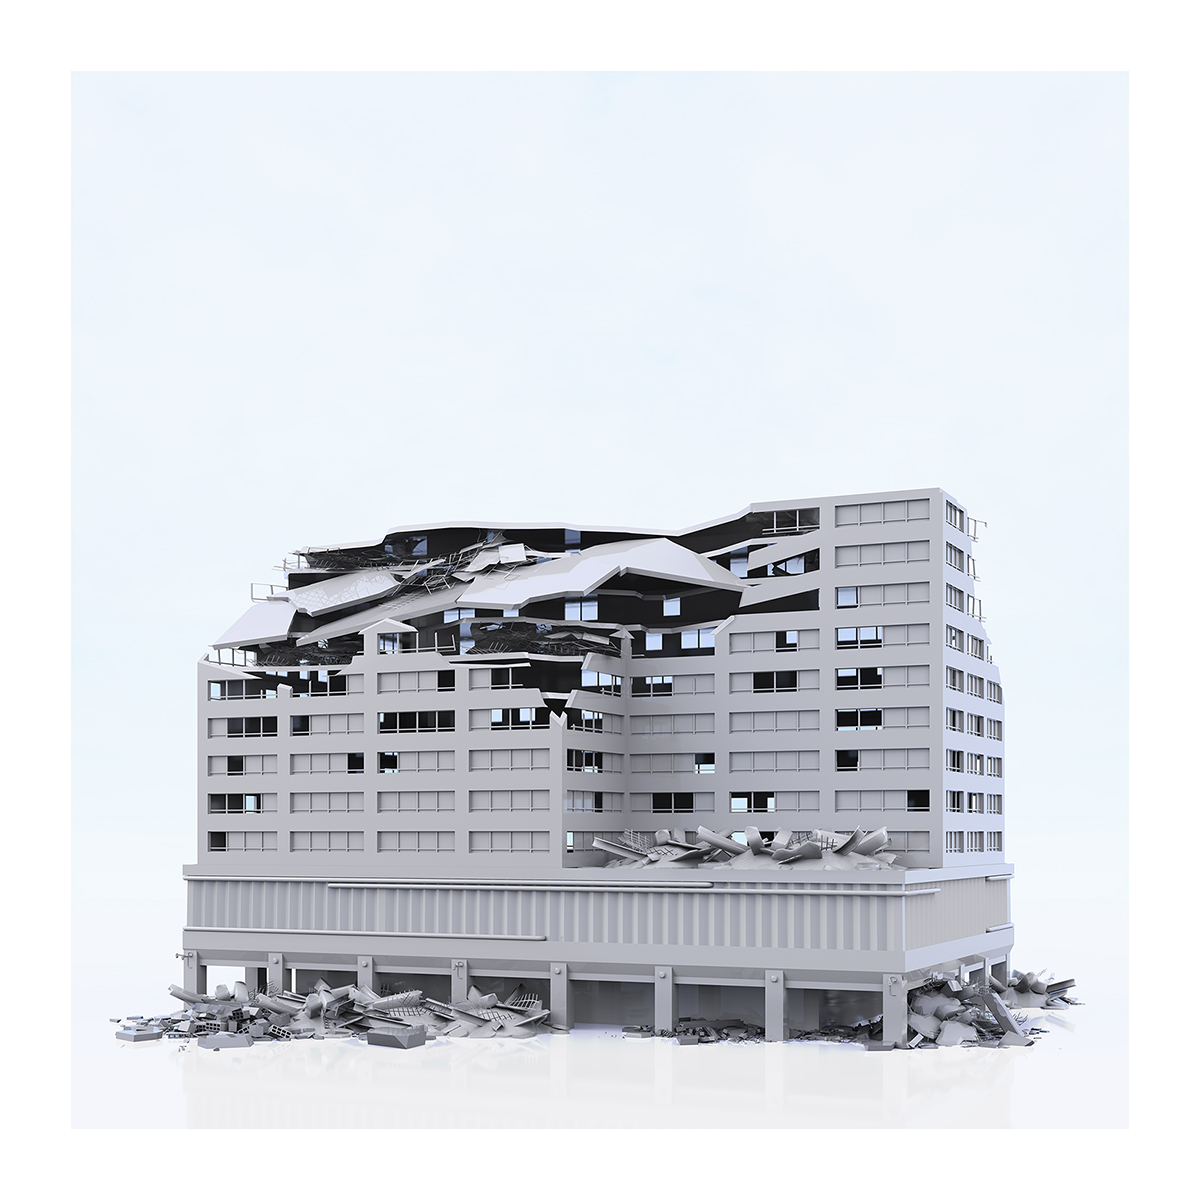 This was HomoSapiens War Affected Buildings 009 2 - 2019 - This was HomoSapiens. War-Affected Buildings